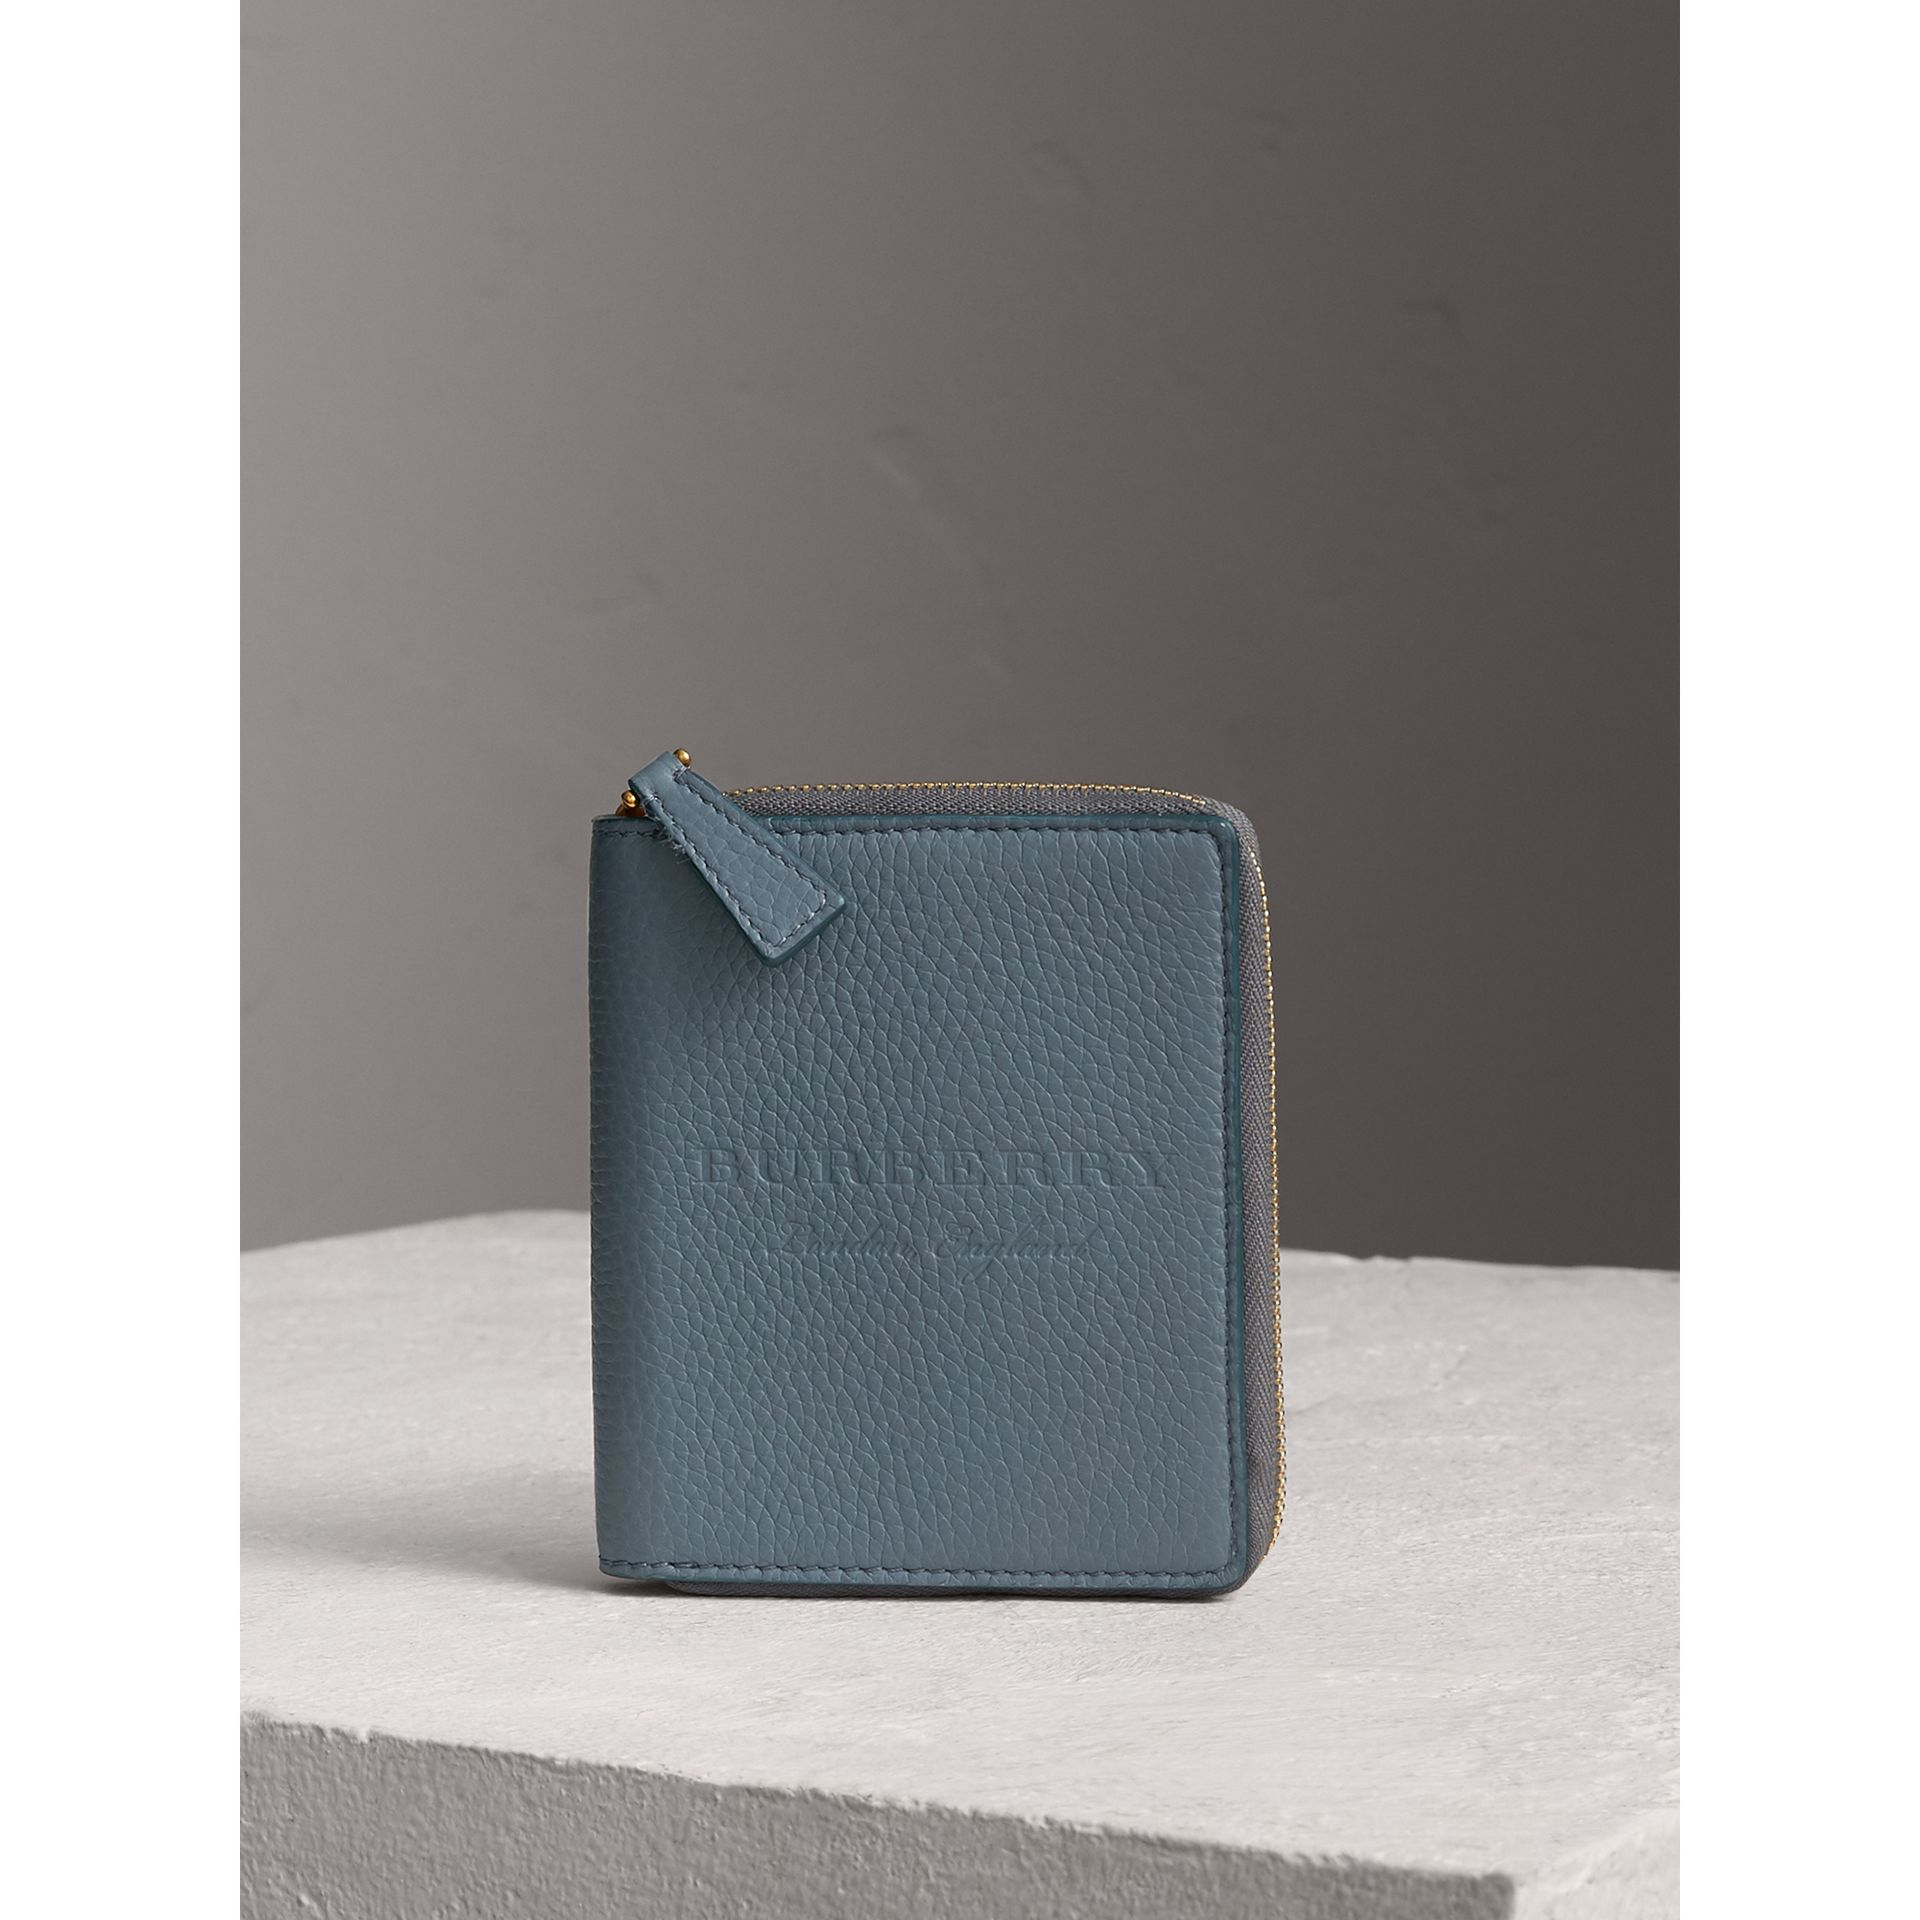 Embossed Grainy Leather Ziparound A6 Notebook Case in Dusty Teal Blue | Burberry Hong Kong - gallery image 4